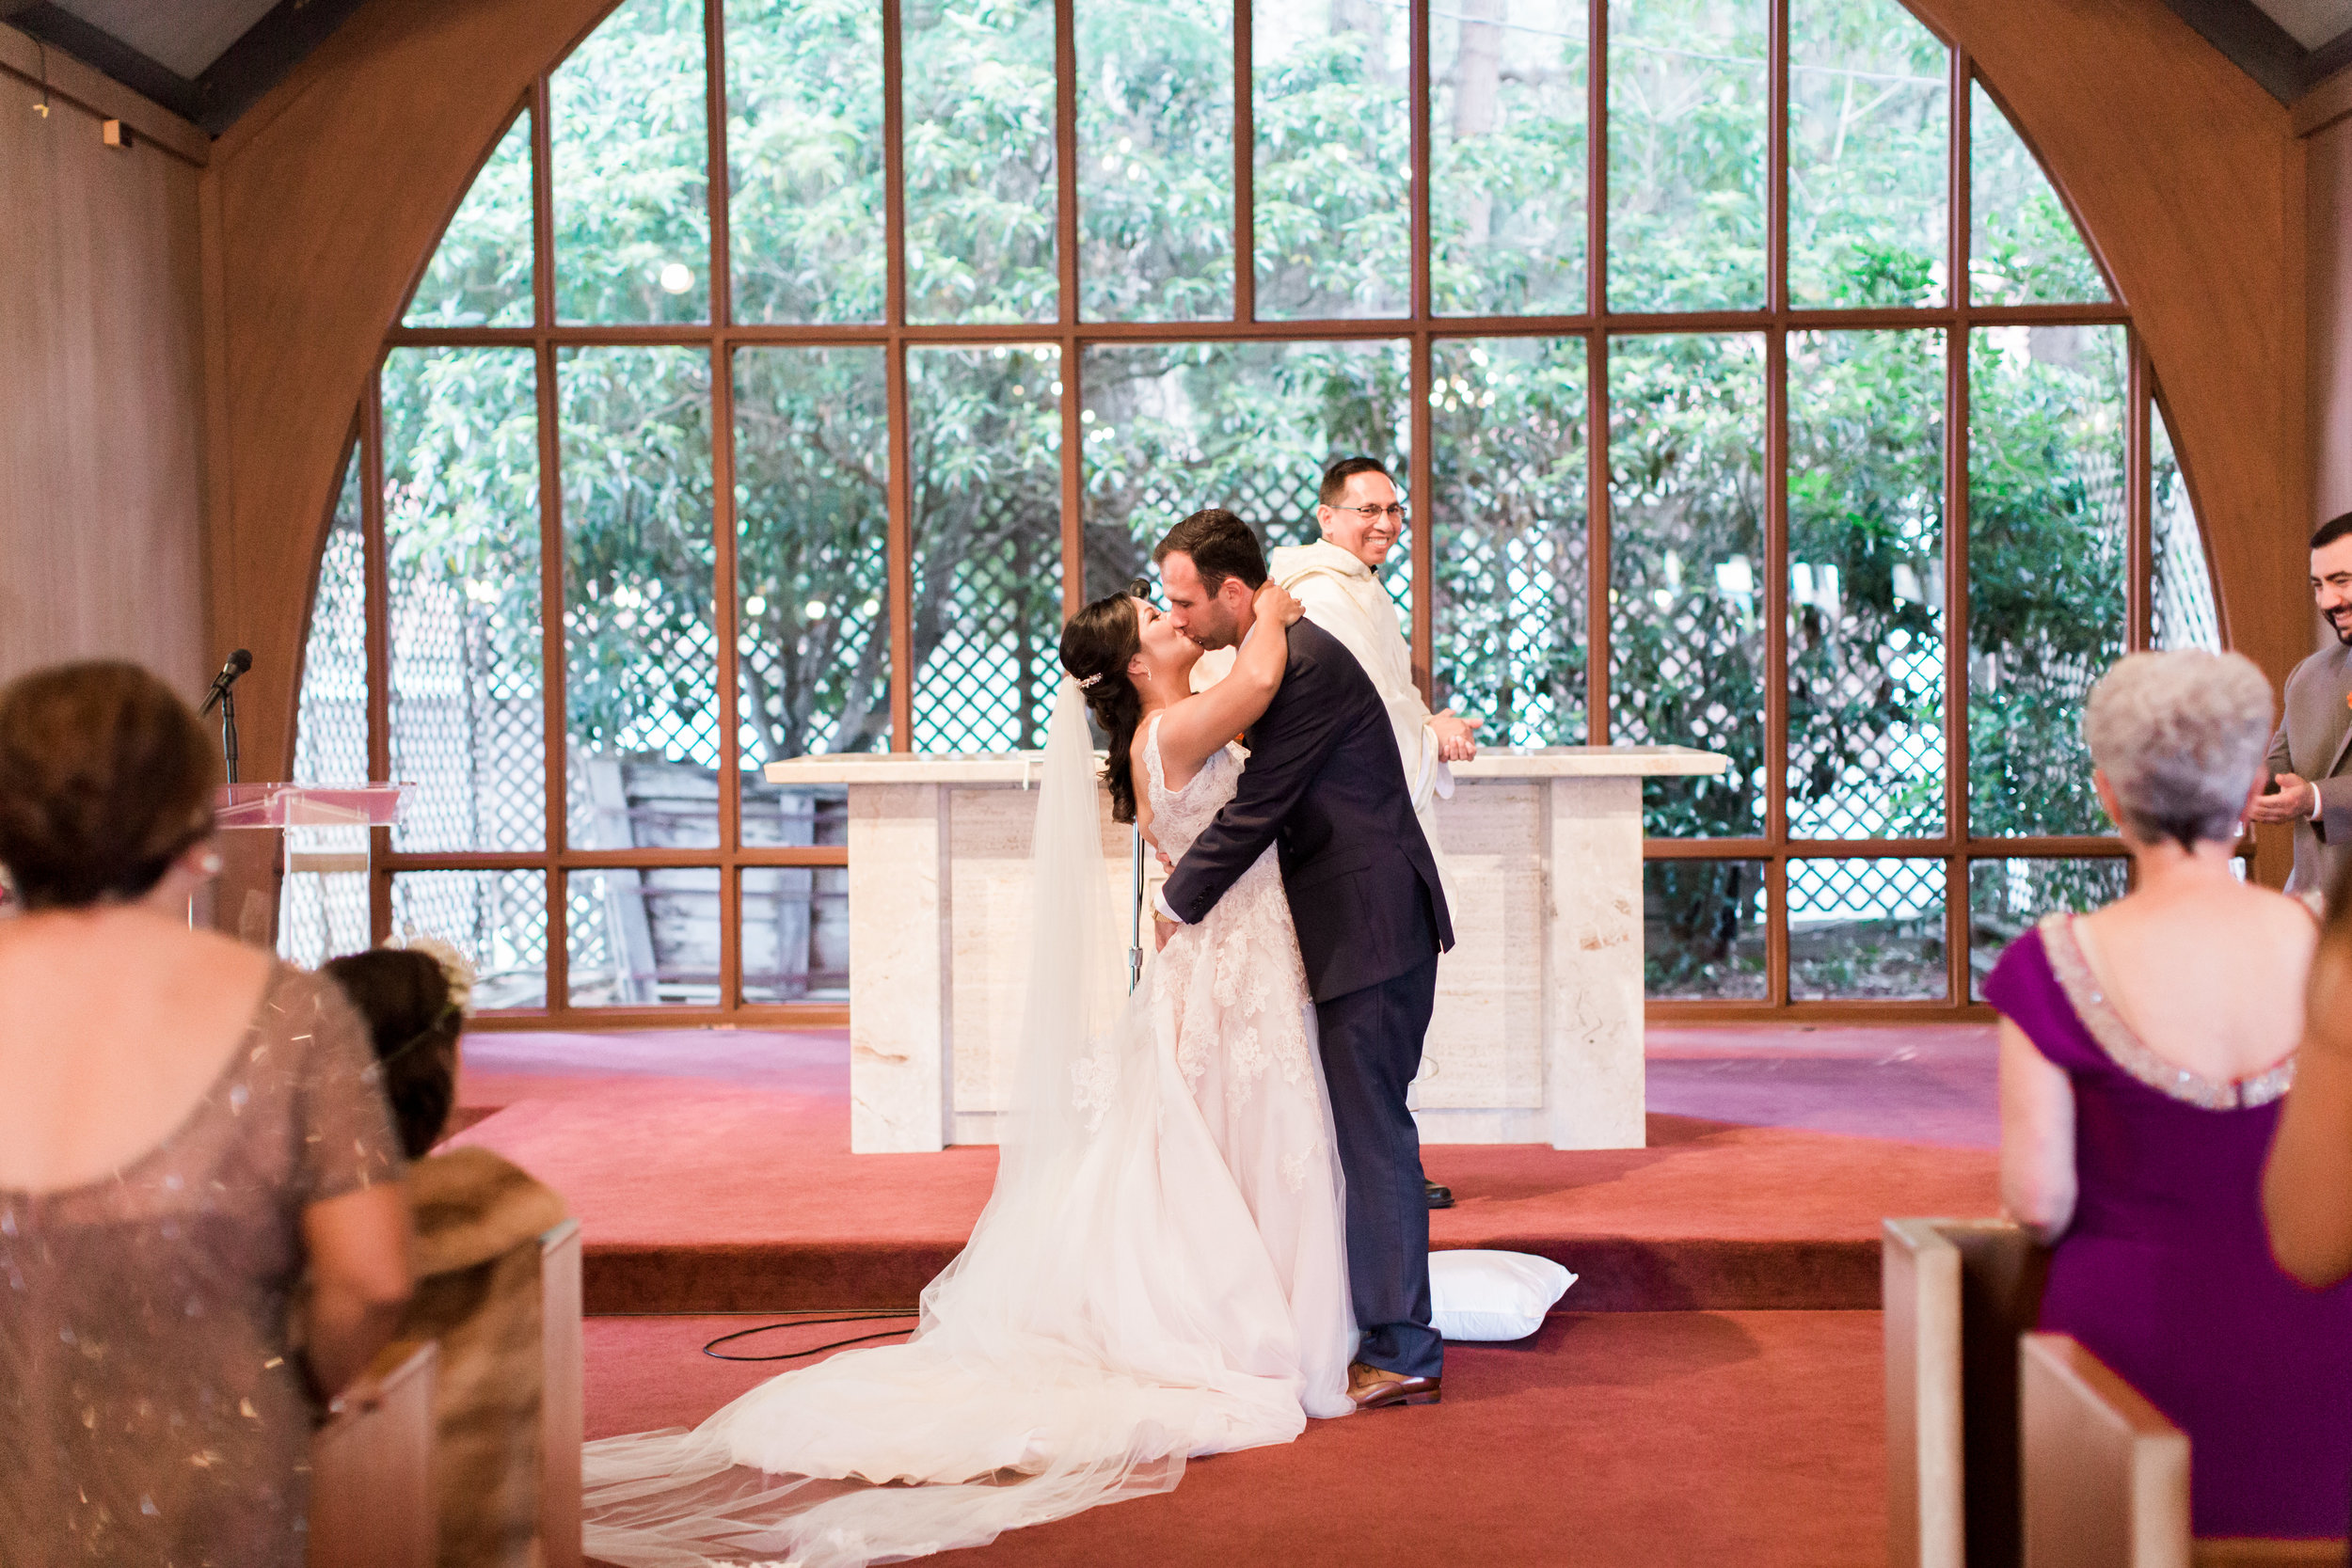 style-inspired-wedding-at-firehouse-8-in-san-francisco-68.jpg